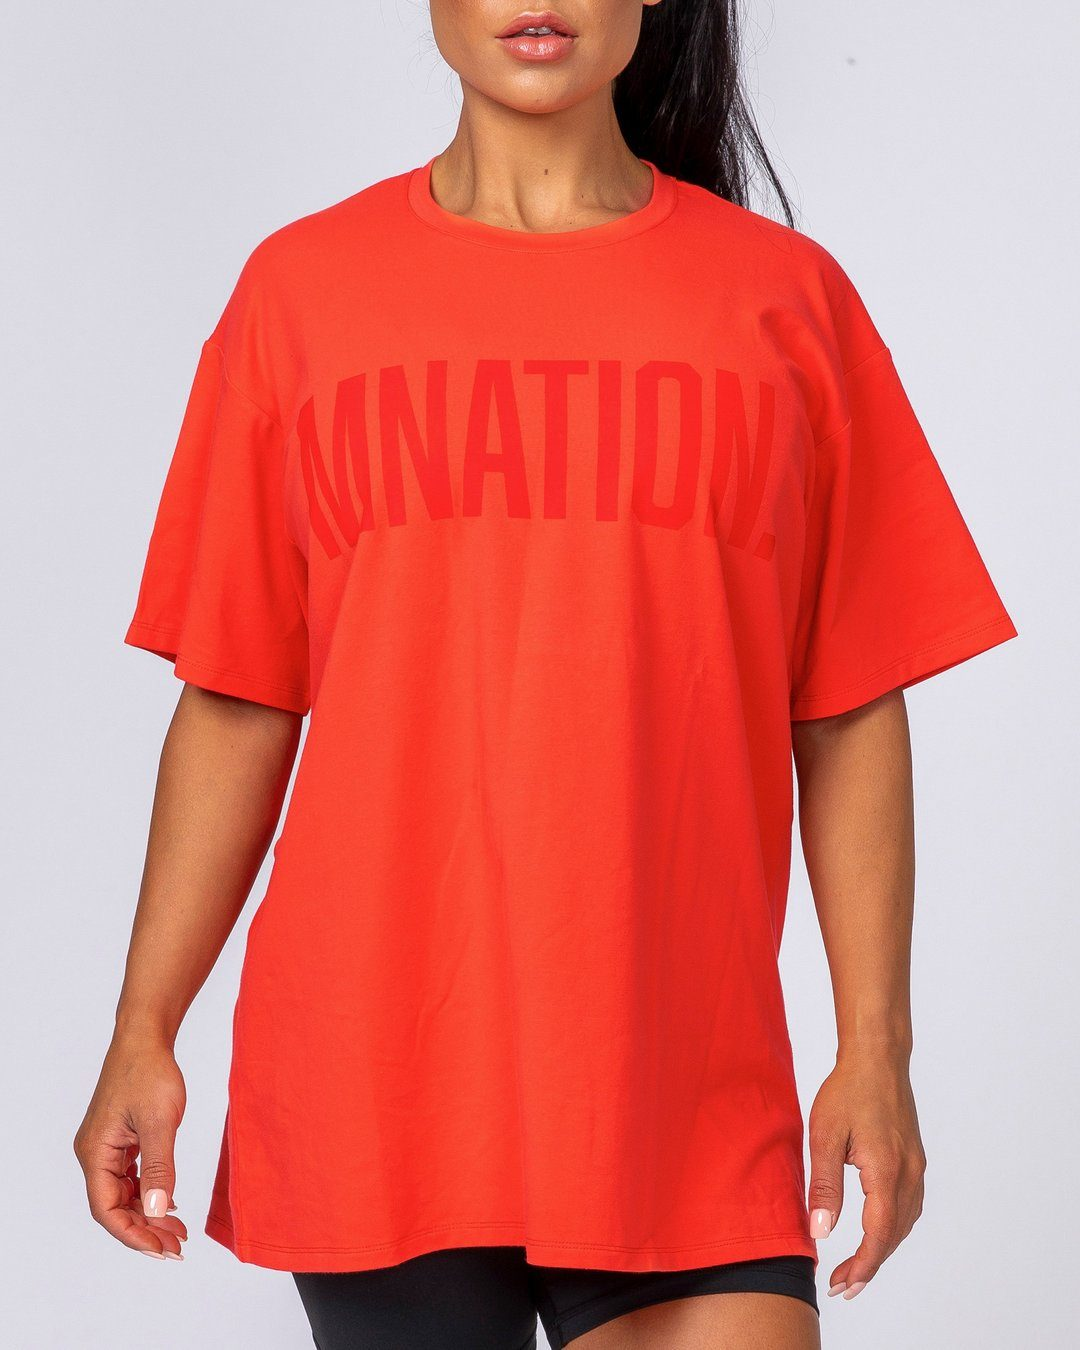 Muscle Nation Oversized Tonal Tee - Red